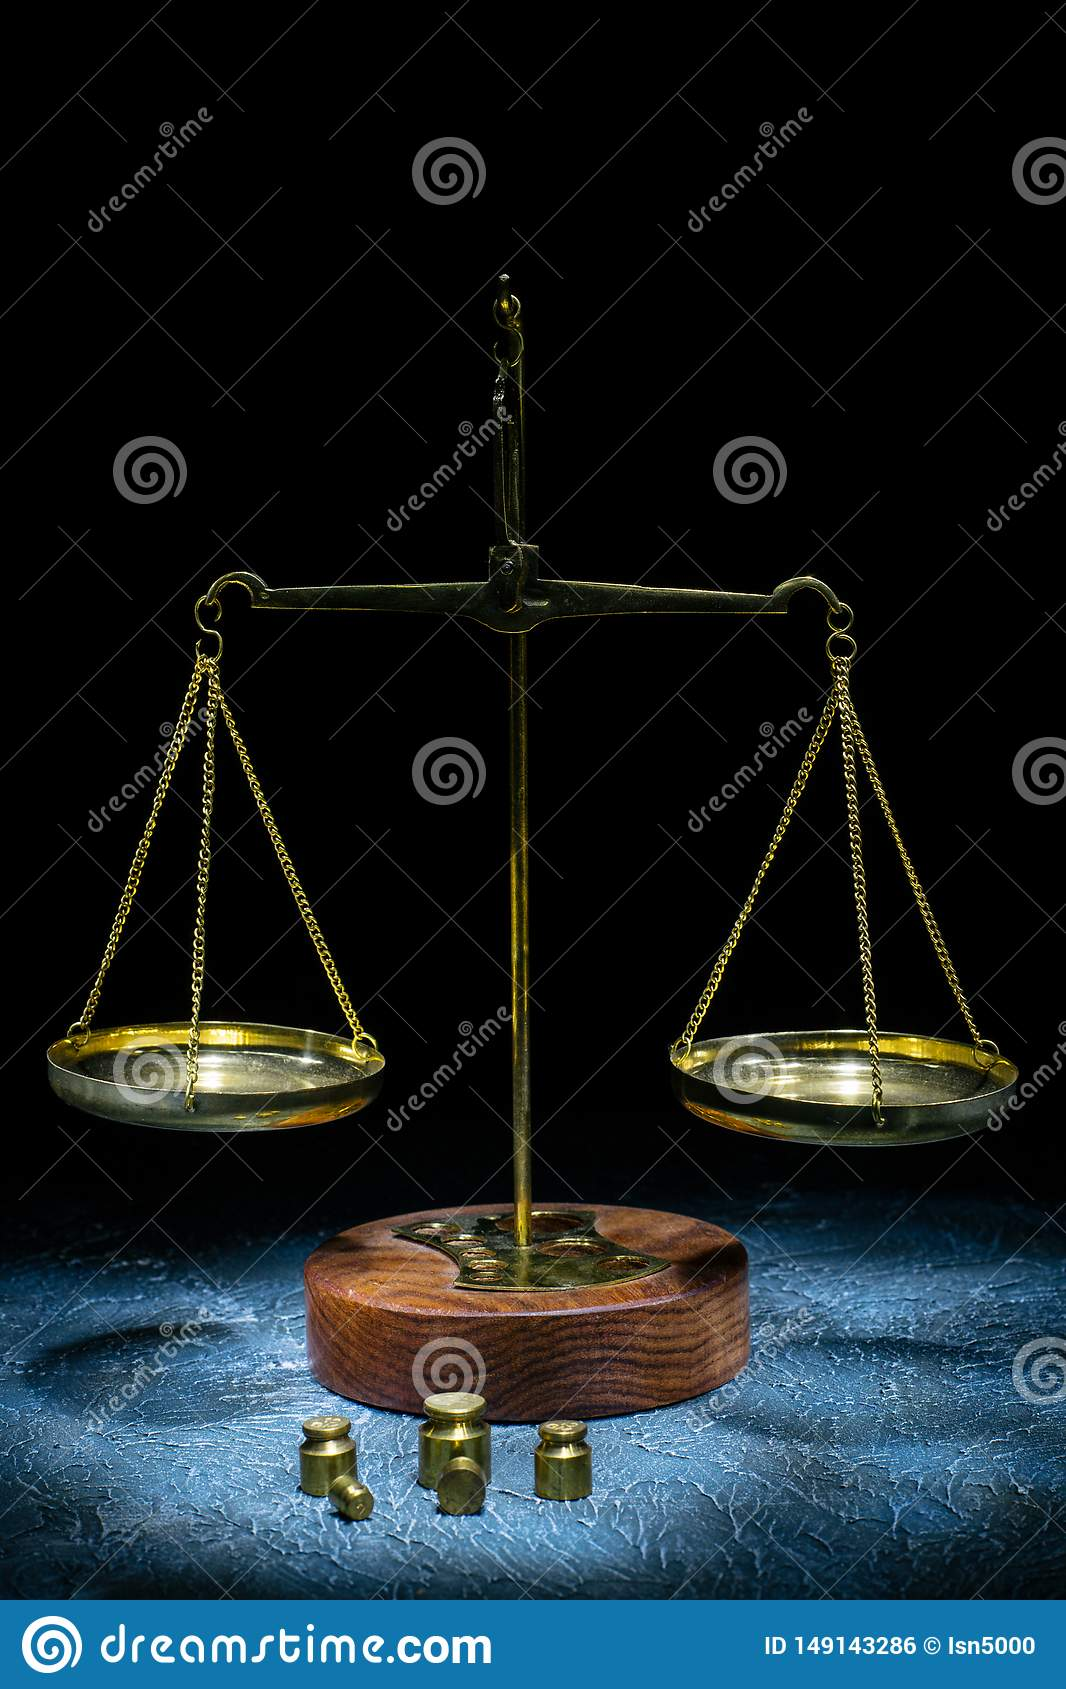 Old vintage scales of justice with weights stand on a stone background. Picture taken with a light brush